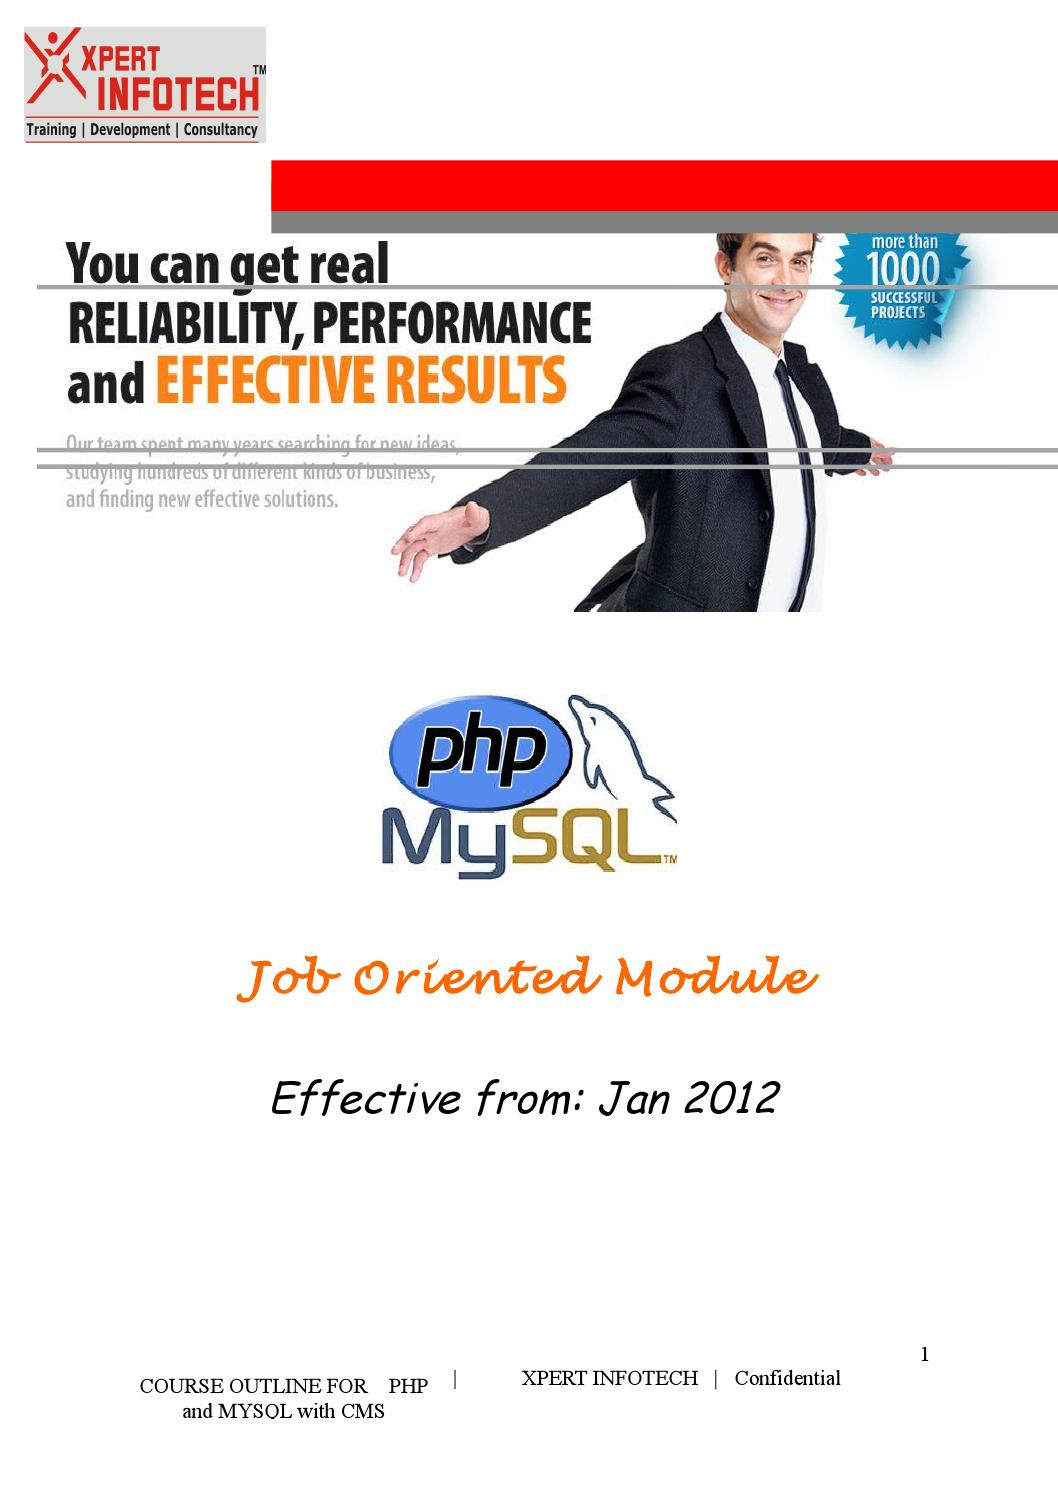 presenter manual php and mysql with cms job orientd